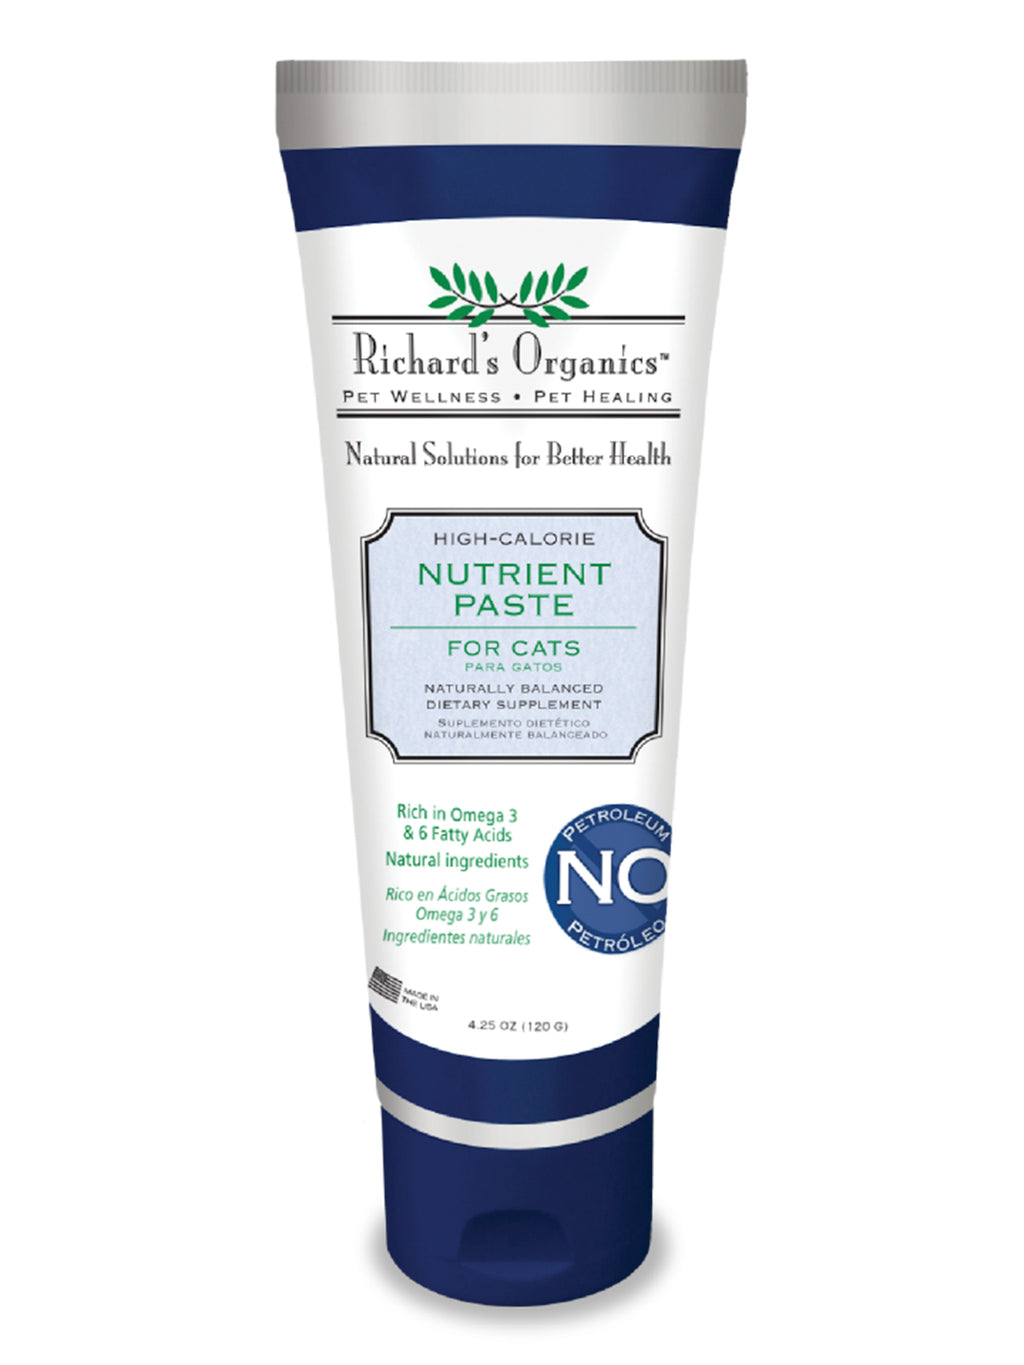 Richard's Organics High Calorie Nutrient Paste for Cats